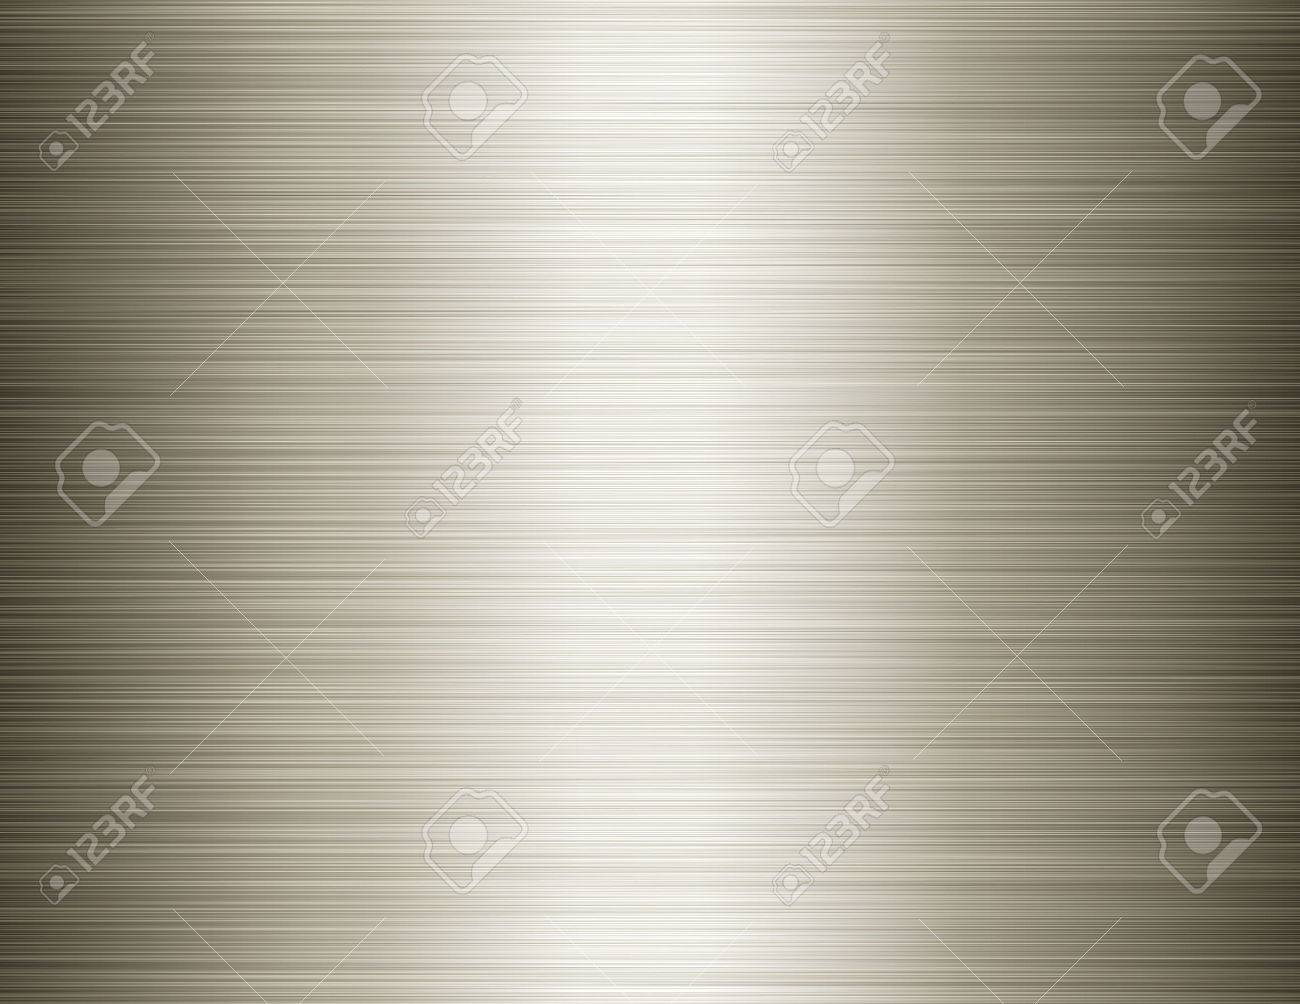 brushed metal stainless steel Stock Vector - 6218730